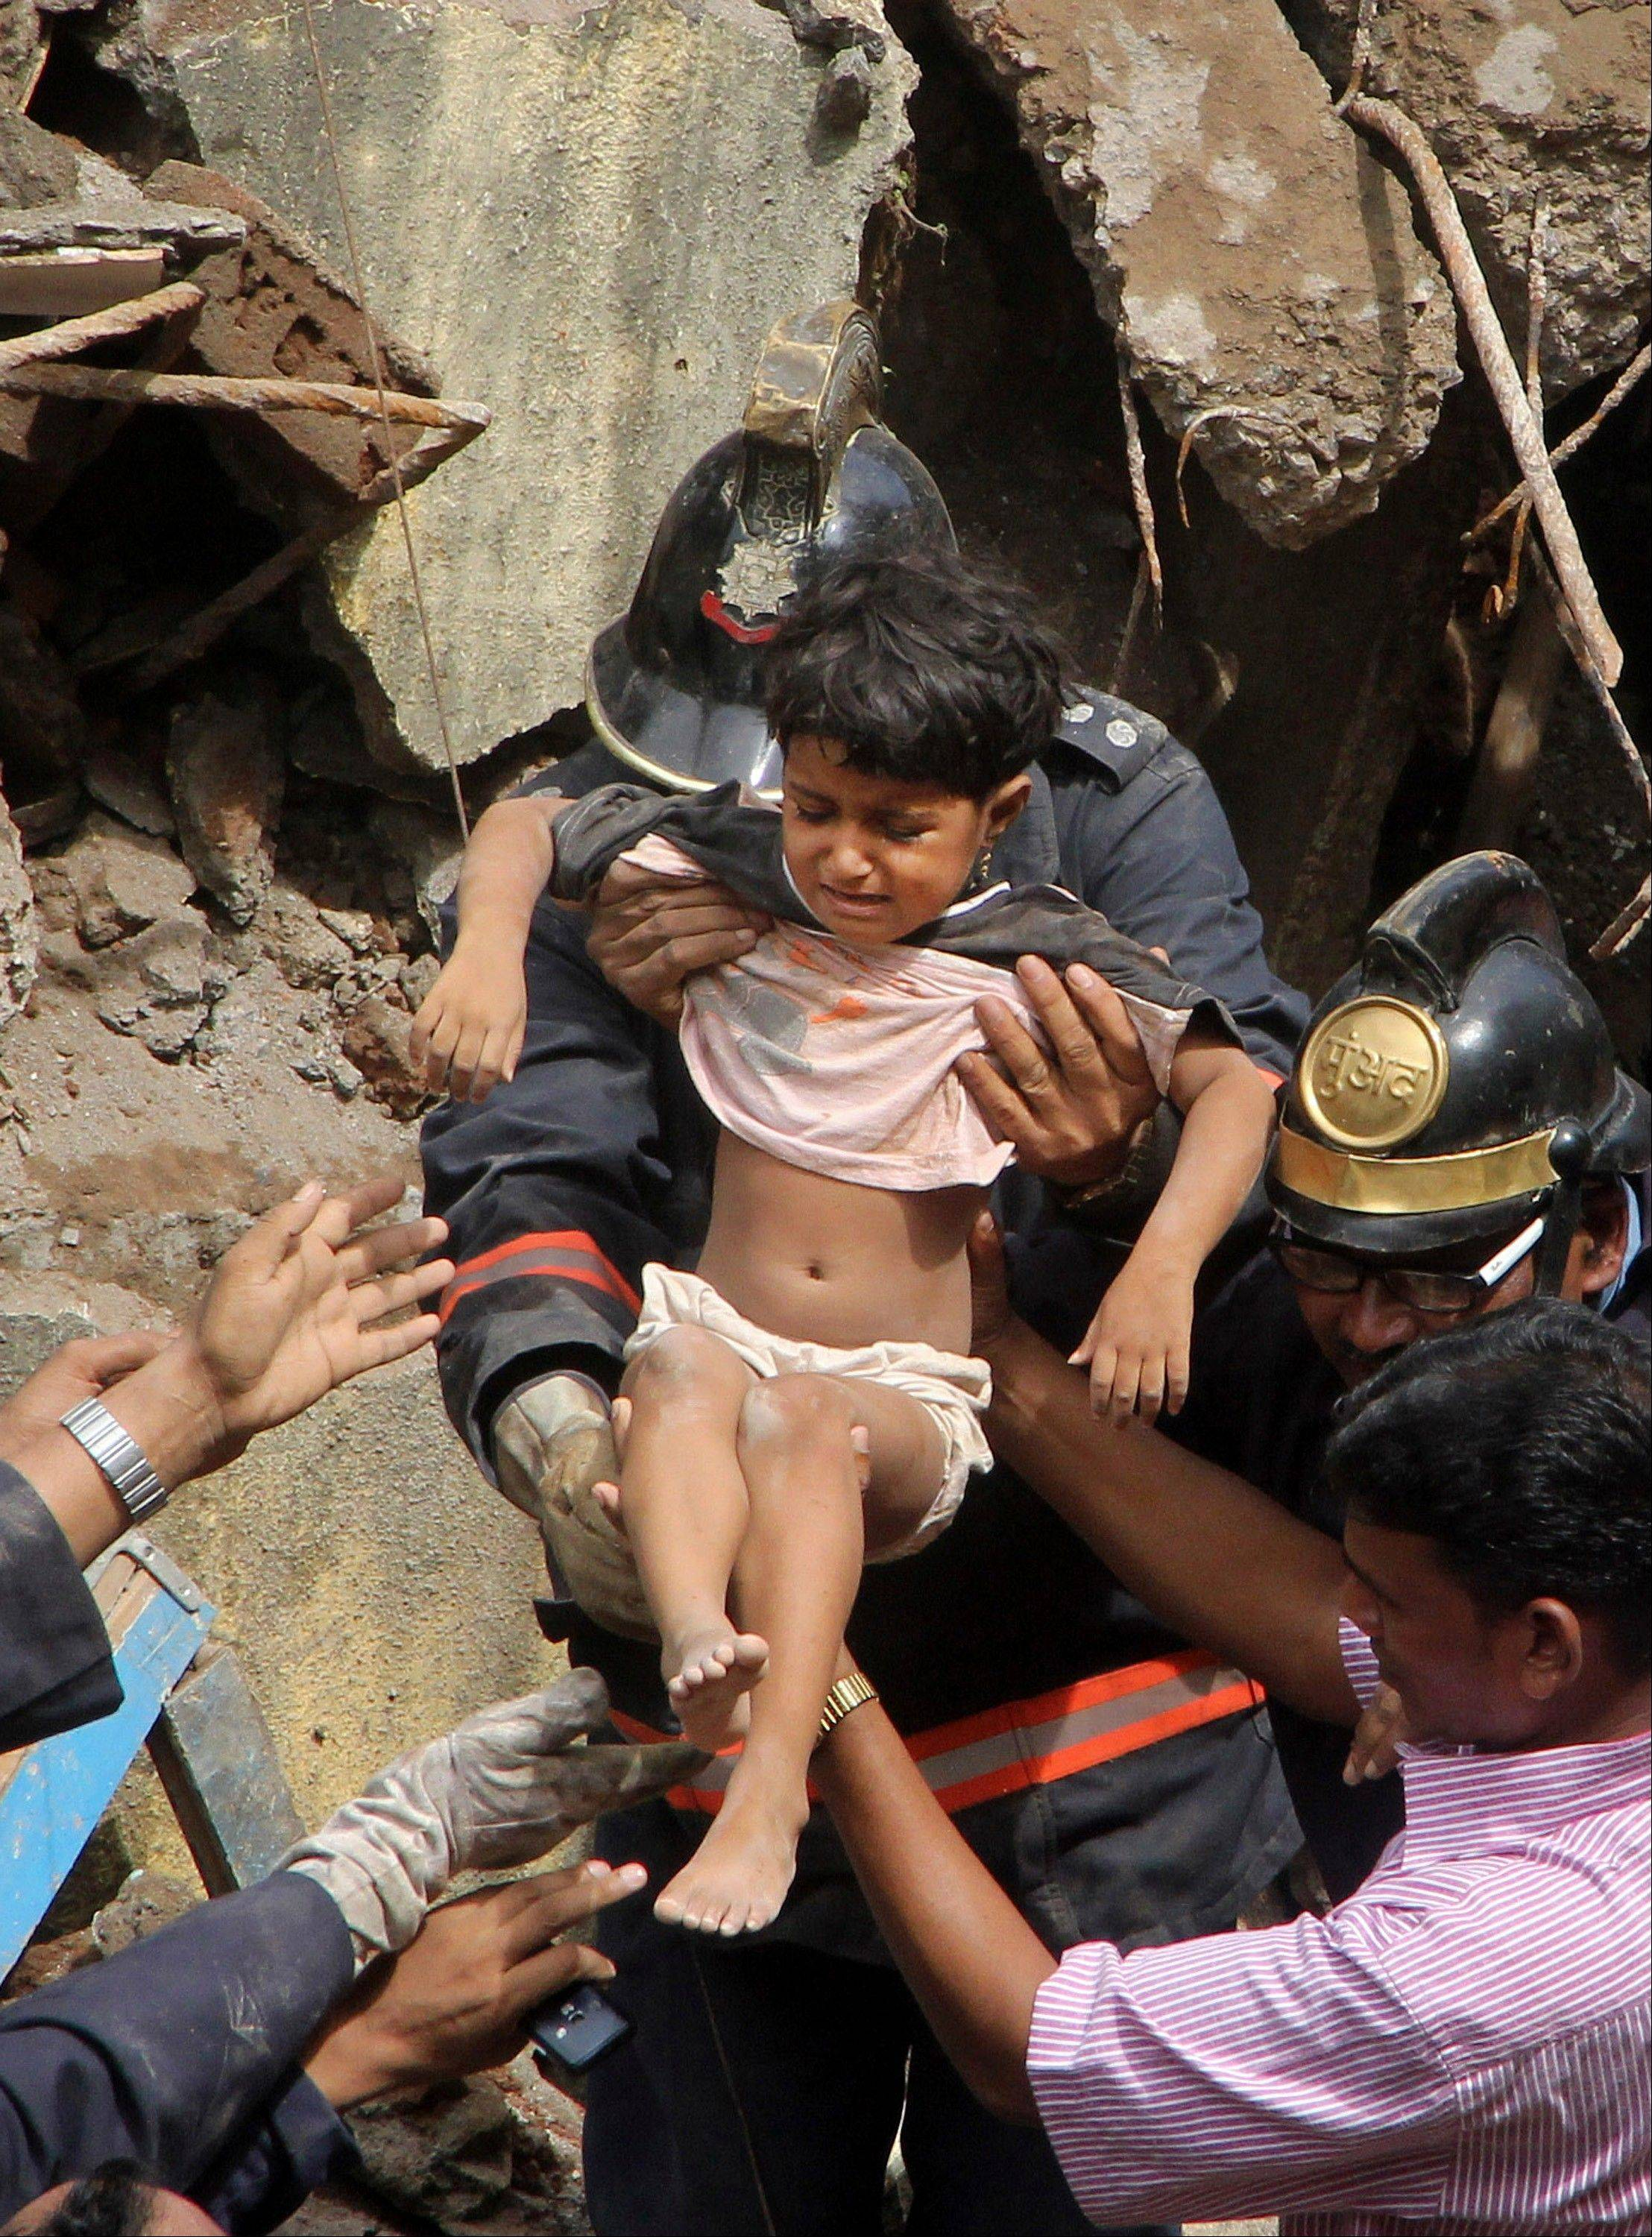 Indian Fire officials rescue a girl from the debris of a collapsed building in Mumbai, India, Friday, Sept. 27, 2013. The multistory residential building collapsed in India's financial capital of Mumbai early Friday.